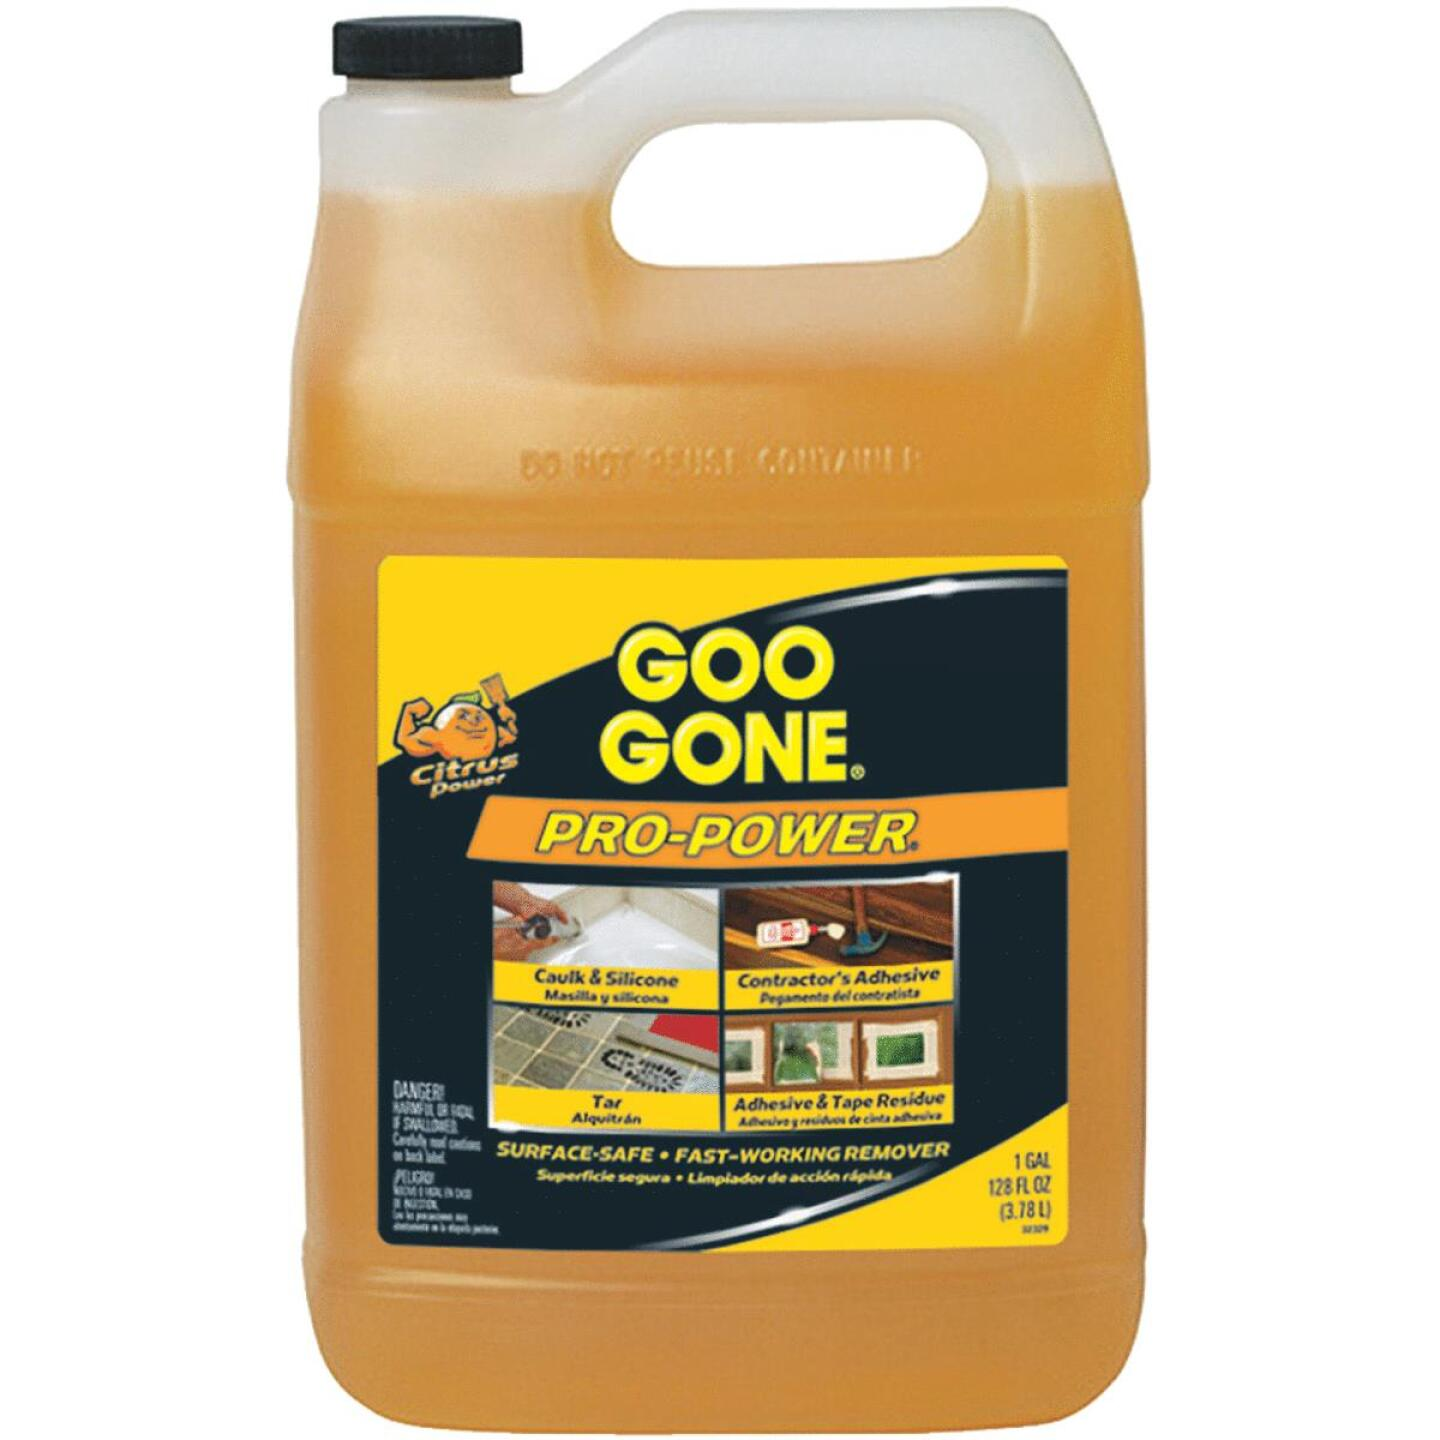 Goo Gone 1 Gal. Pro-Power Adhesive Remover Image 257